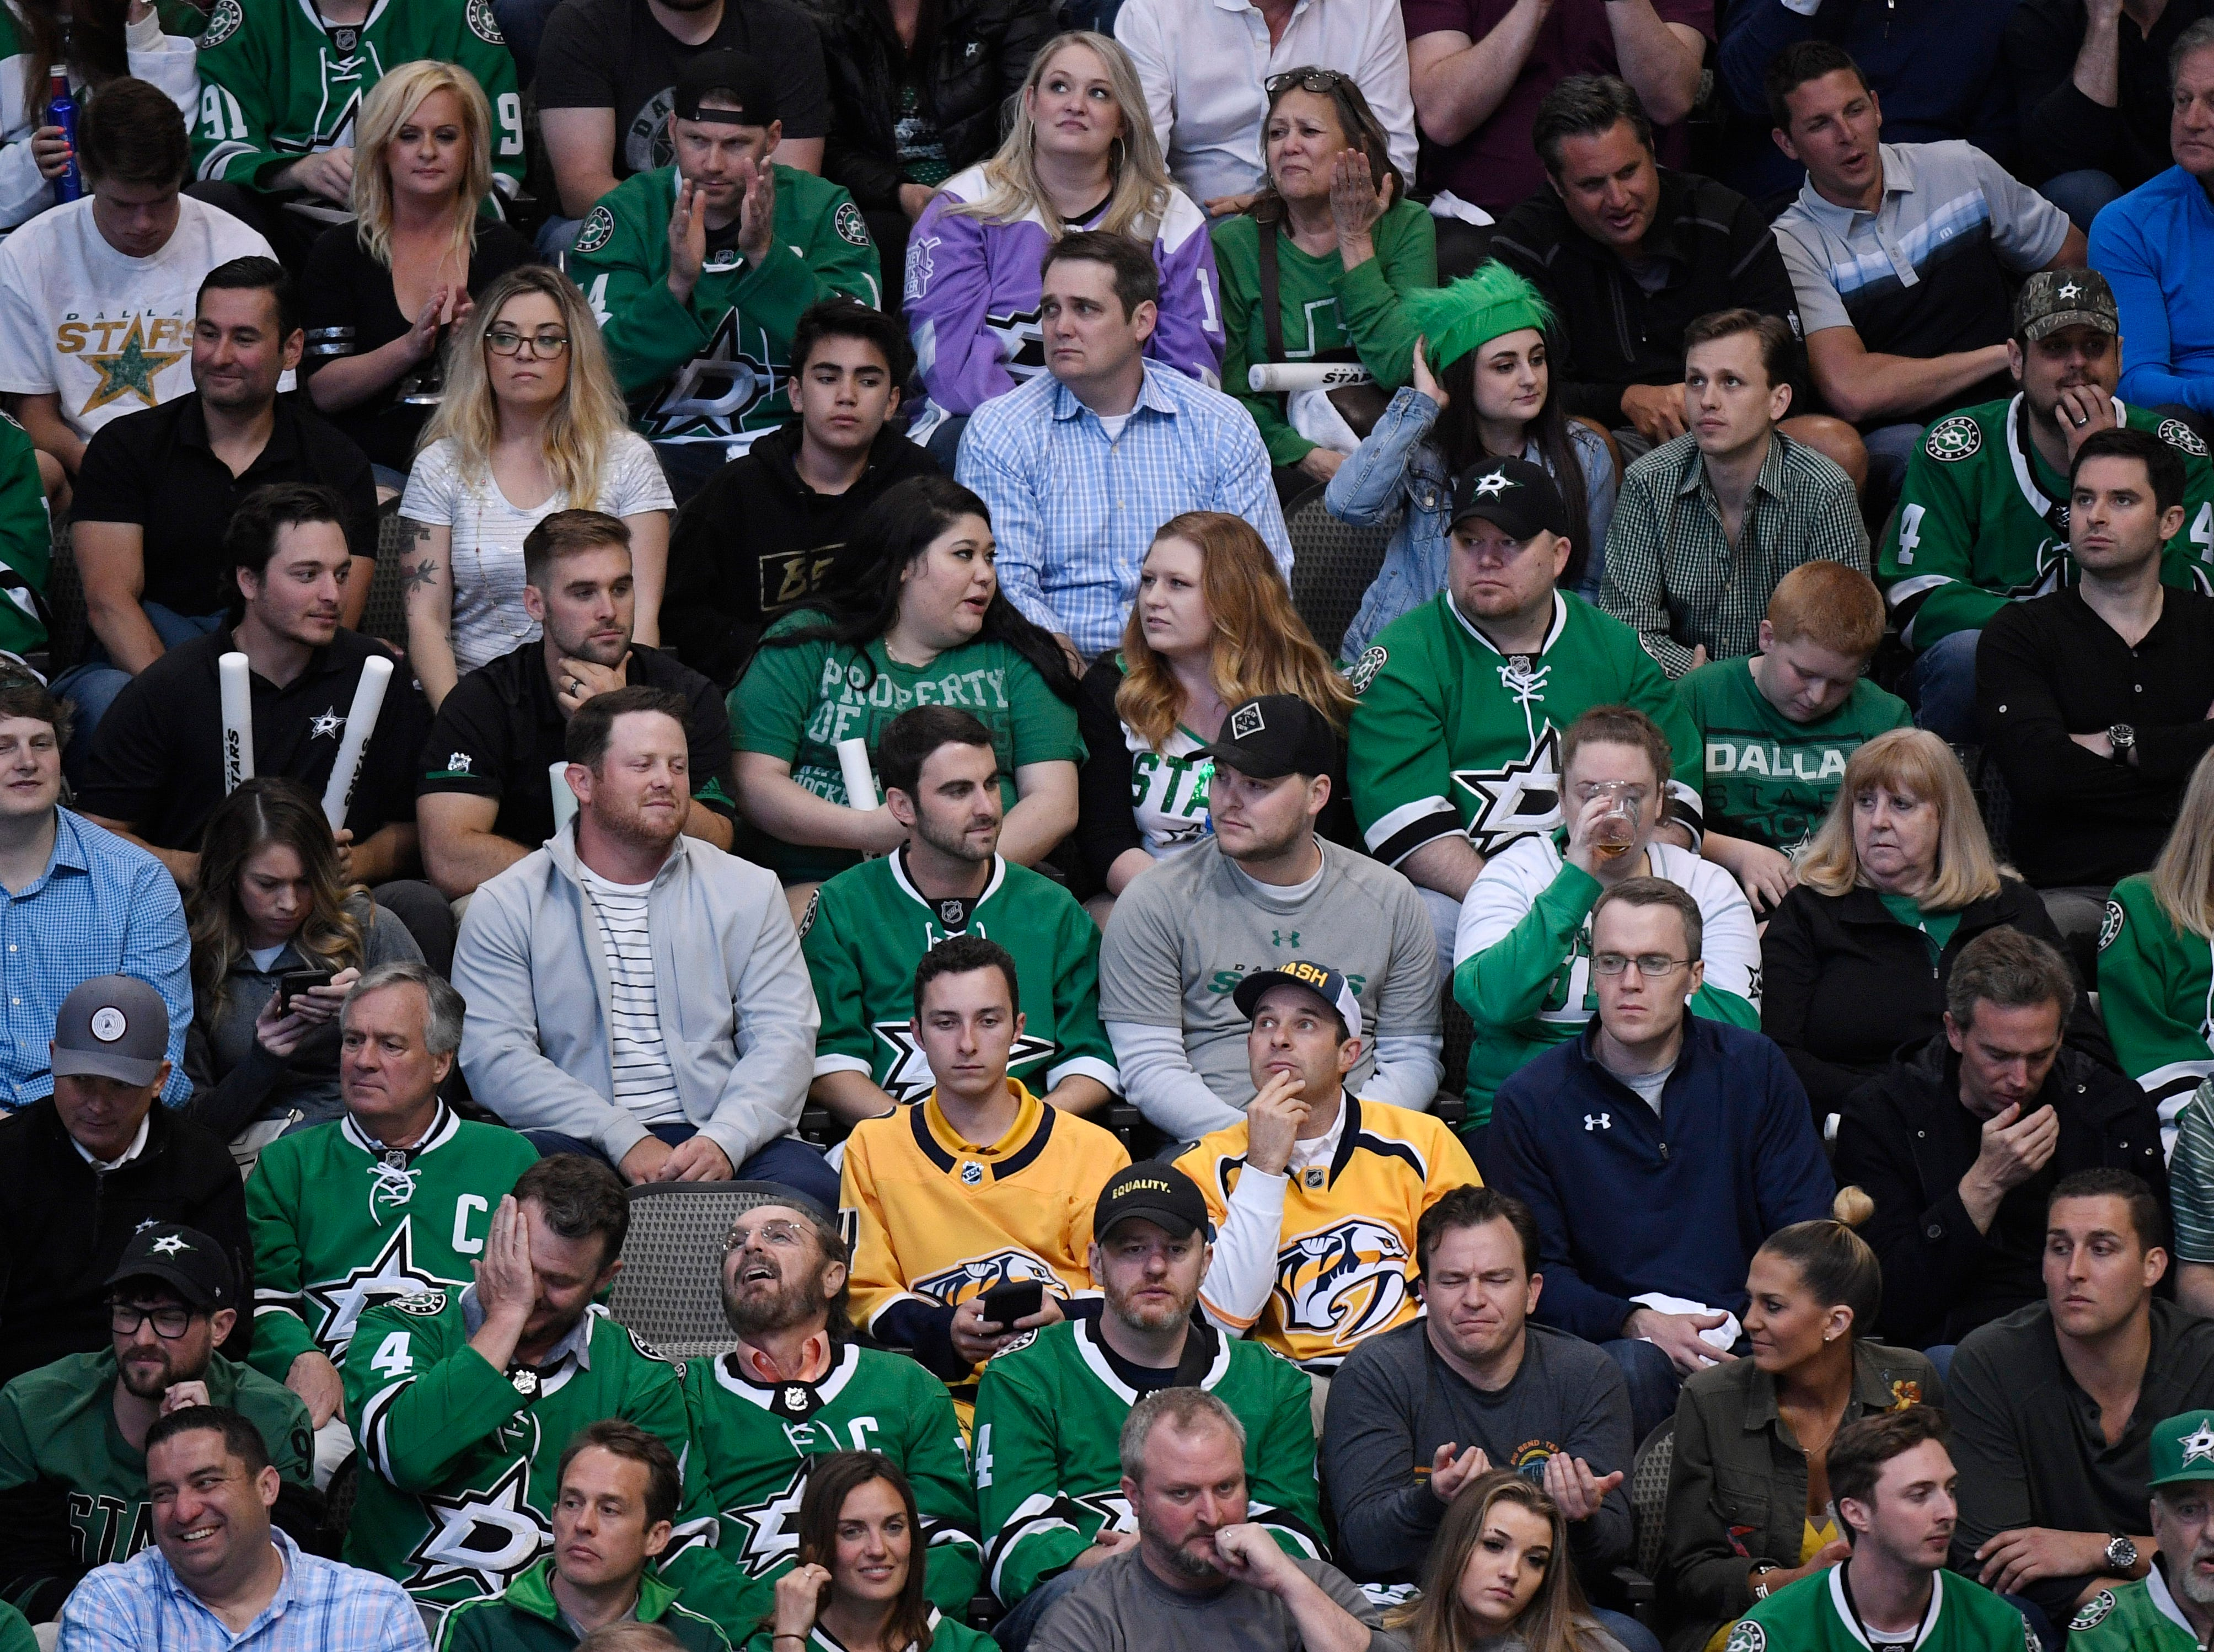 A sea of Dallas Stars fans surround two Nashville Predators fans during the second period of the divisional semifinal game at the American Airlines Center in Dallas, Texas, Monday, April 22, 2019.